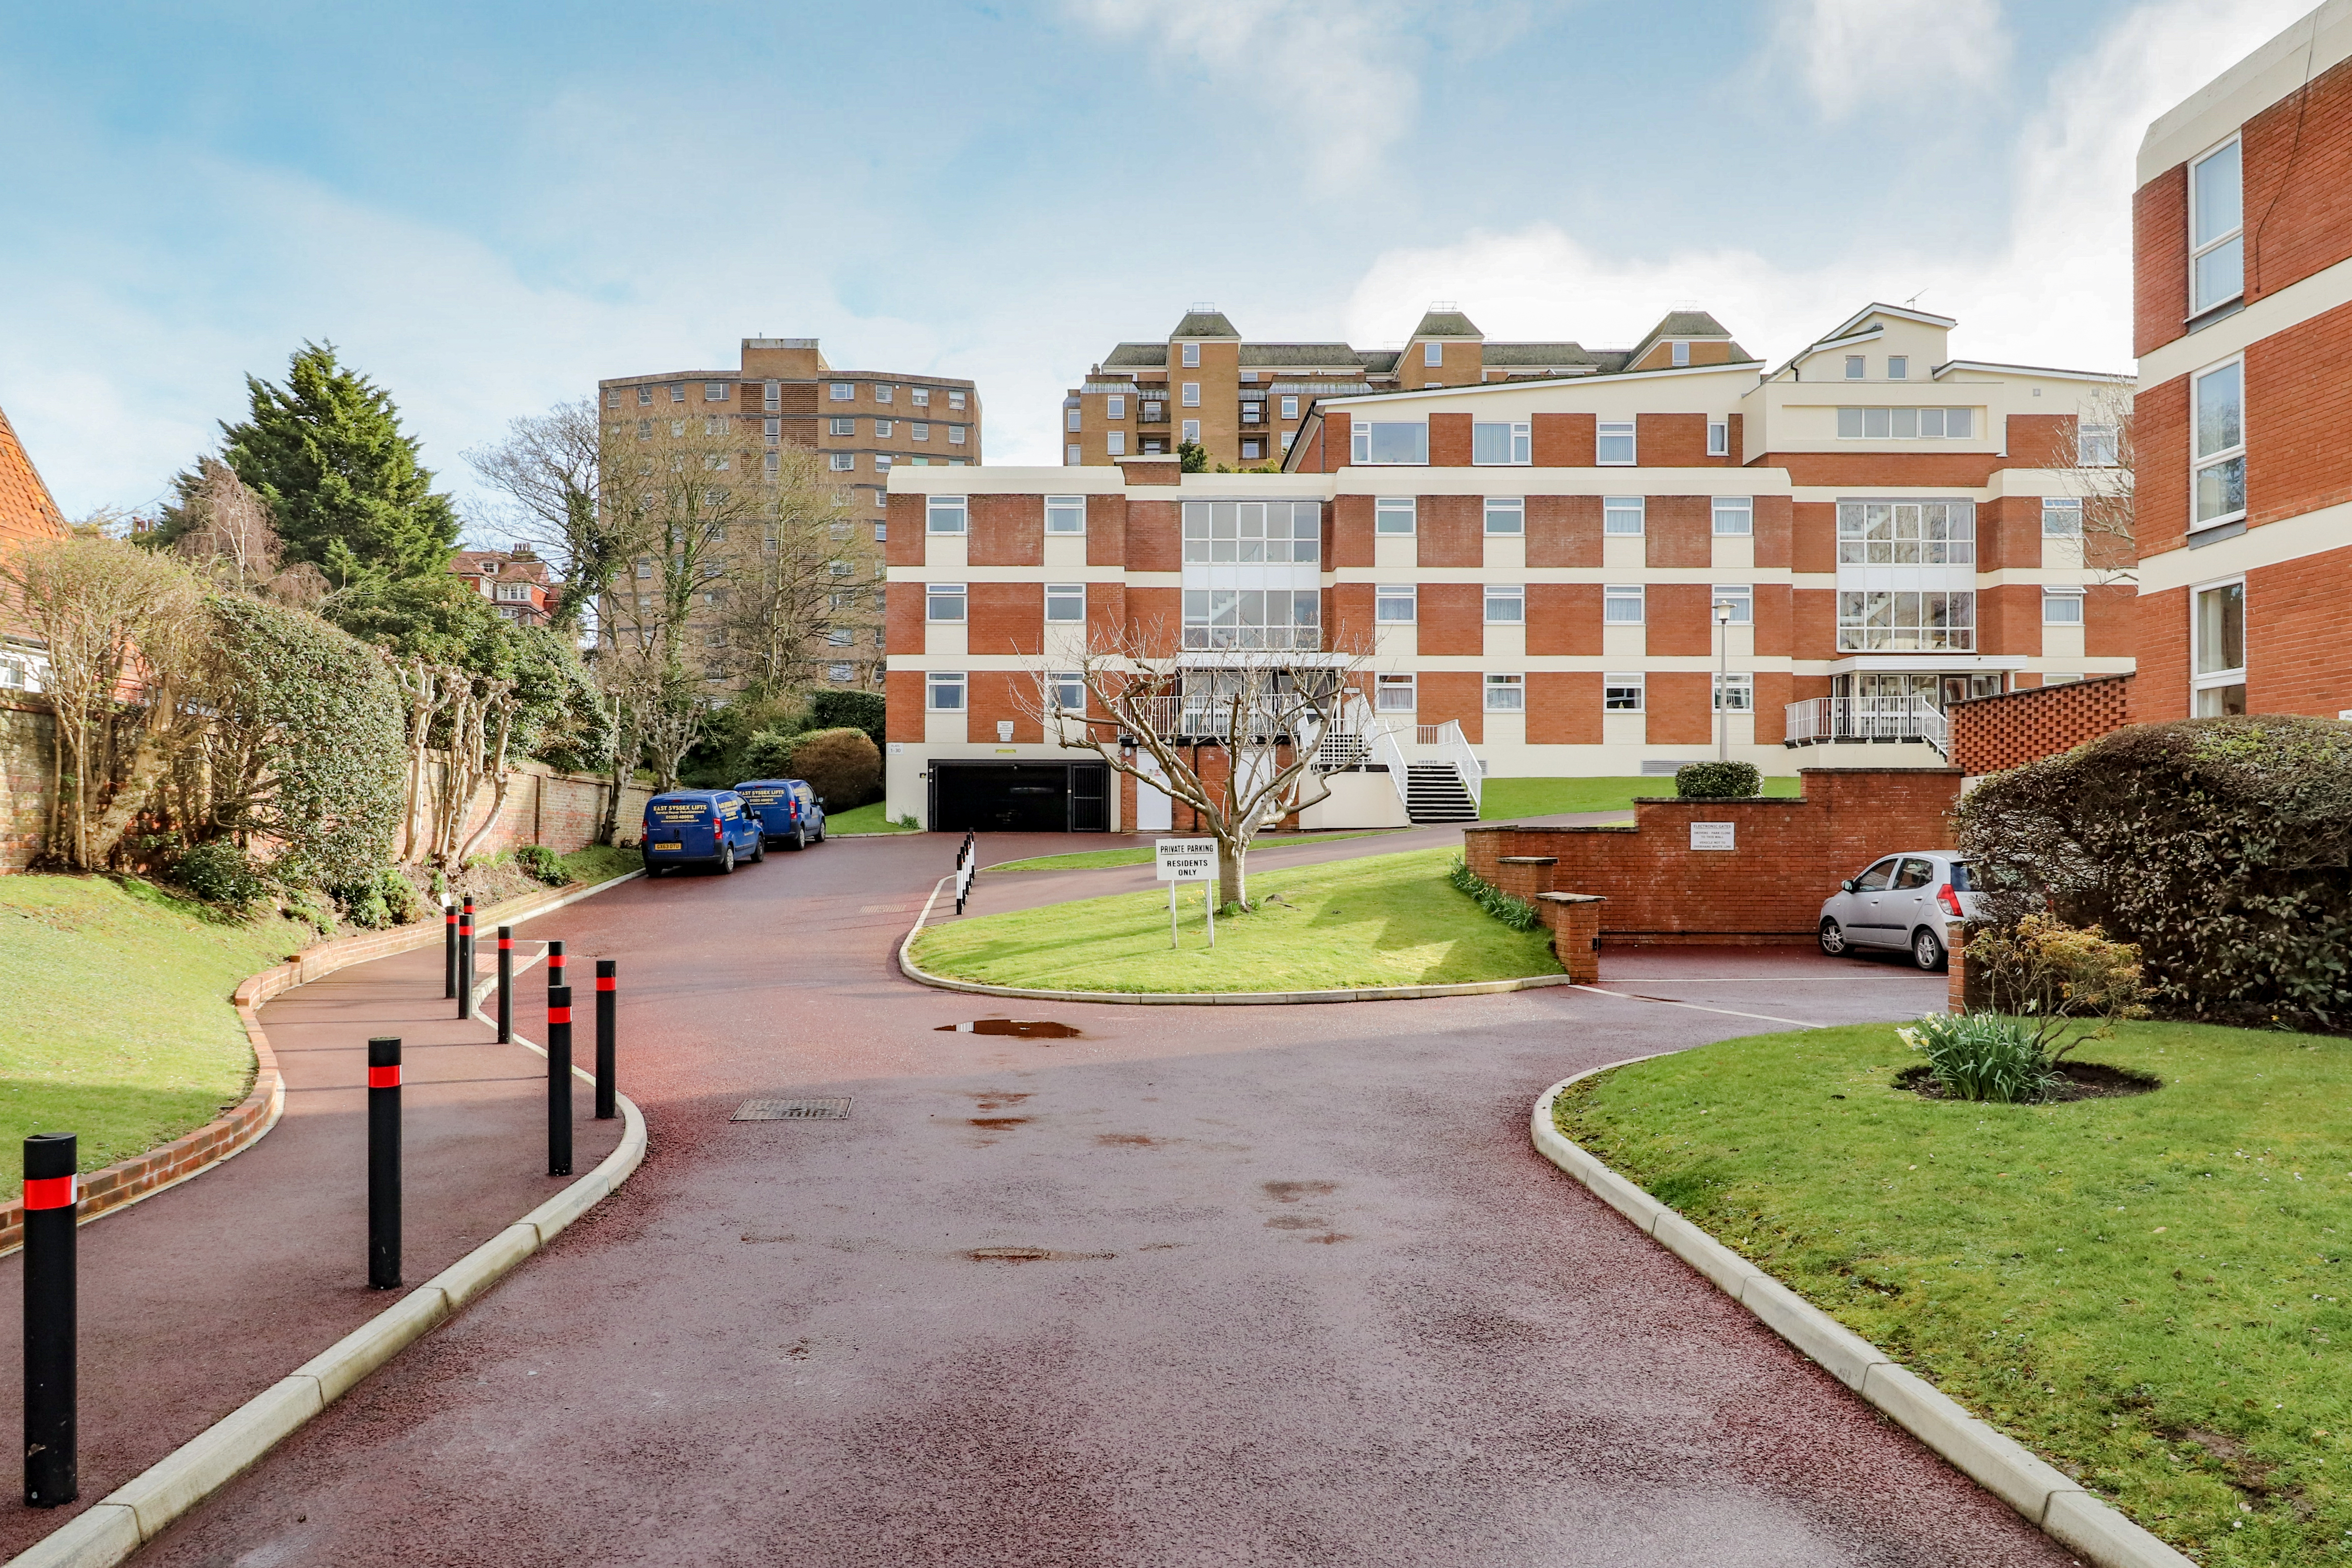 Silverdale Road, Eastbourne, East Sussex, BN20 7AQ